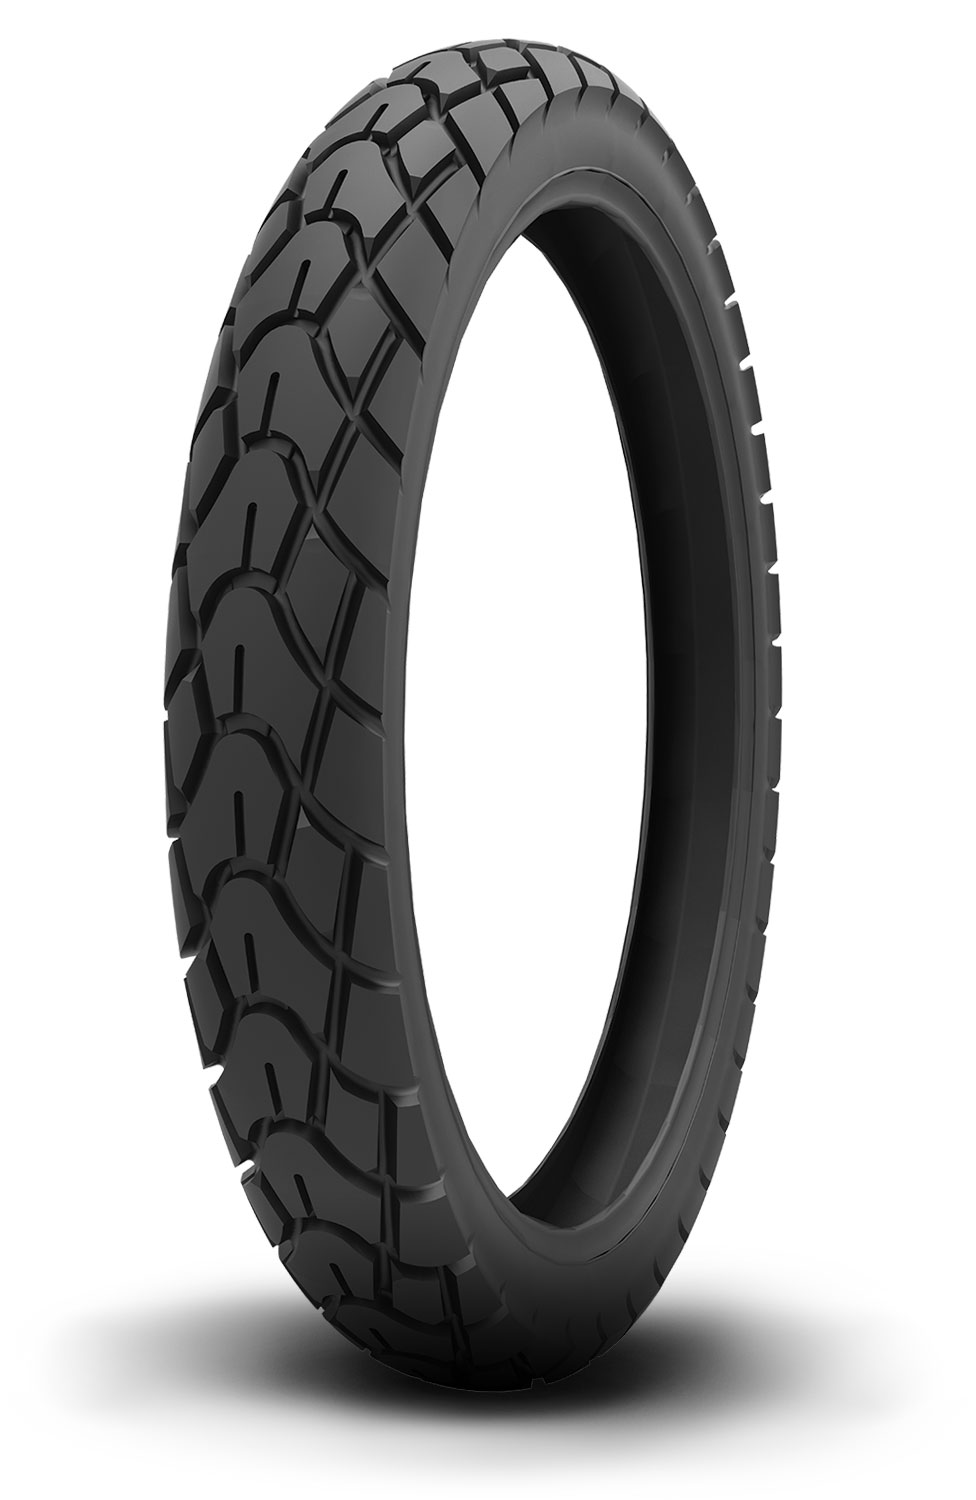 Motorcycle Tire Sizes >> Kenda Dual Sport Tires & More | Powersports | Kenda Tires ...